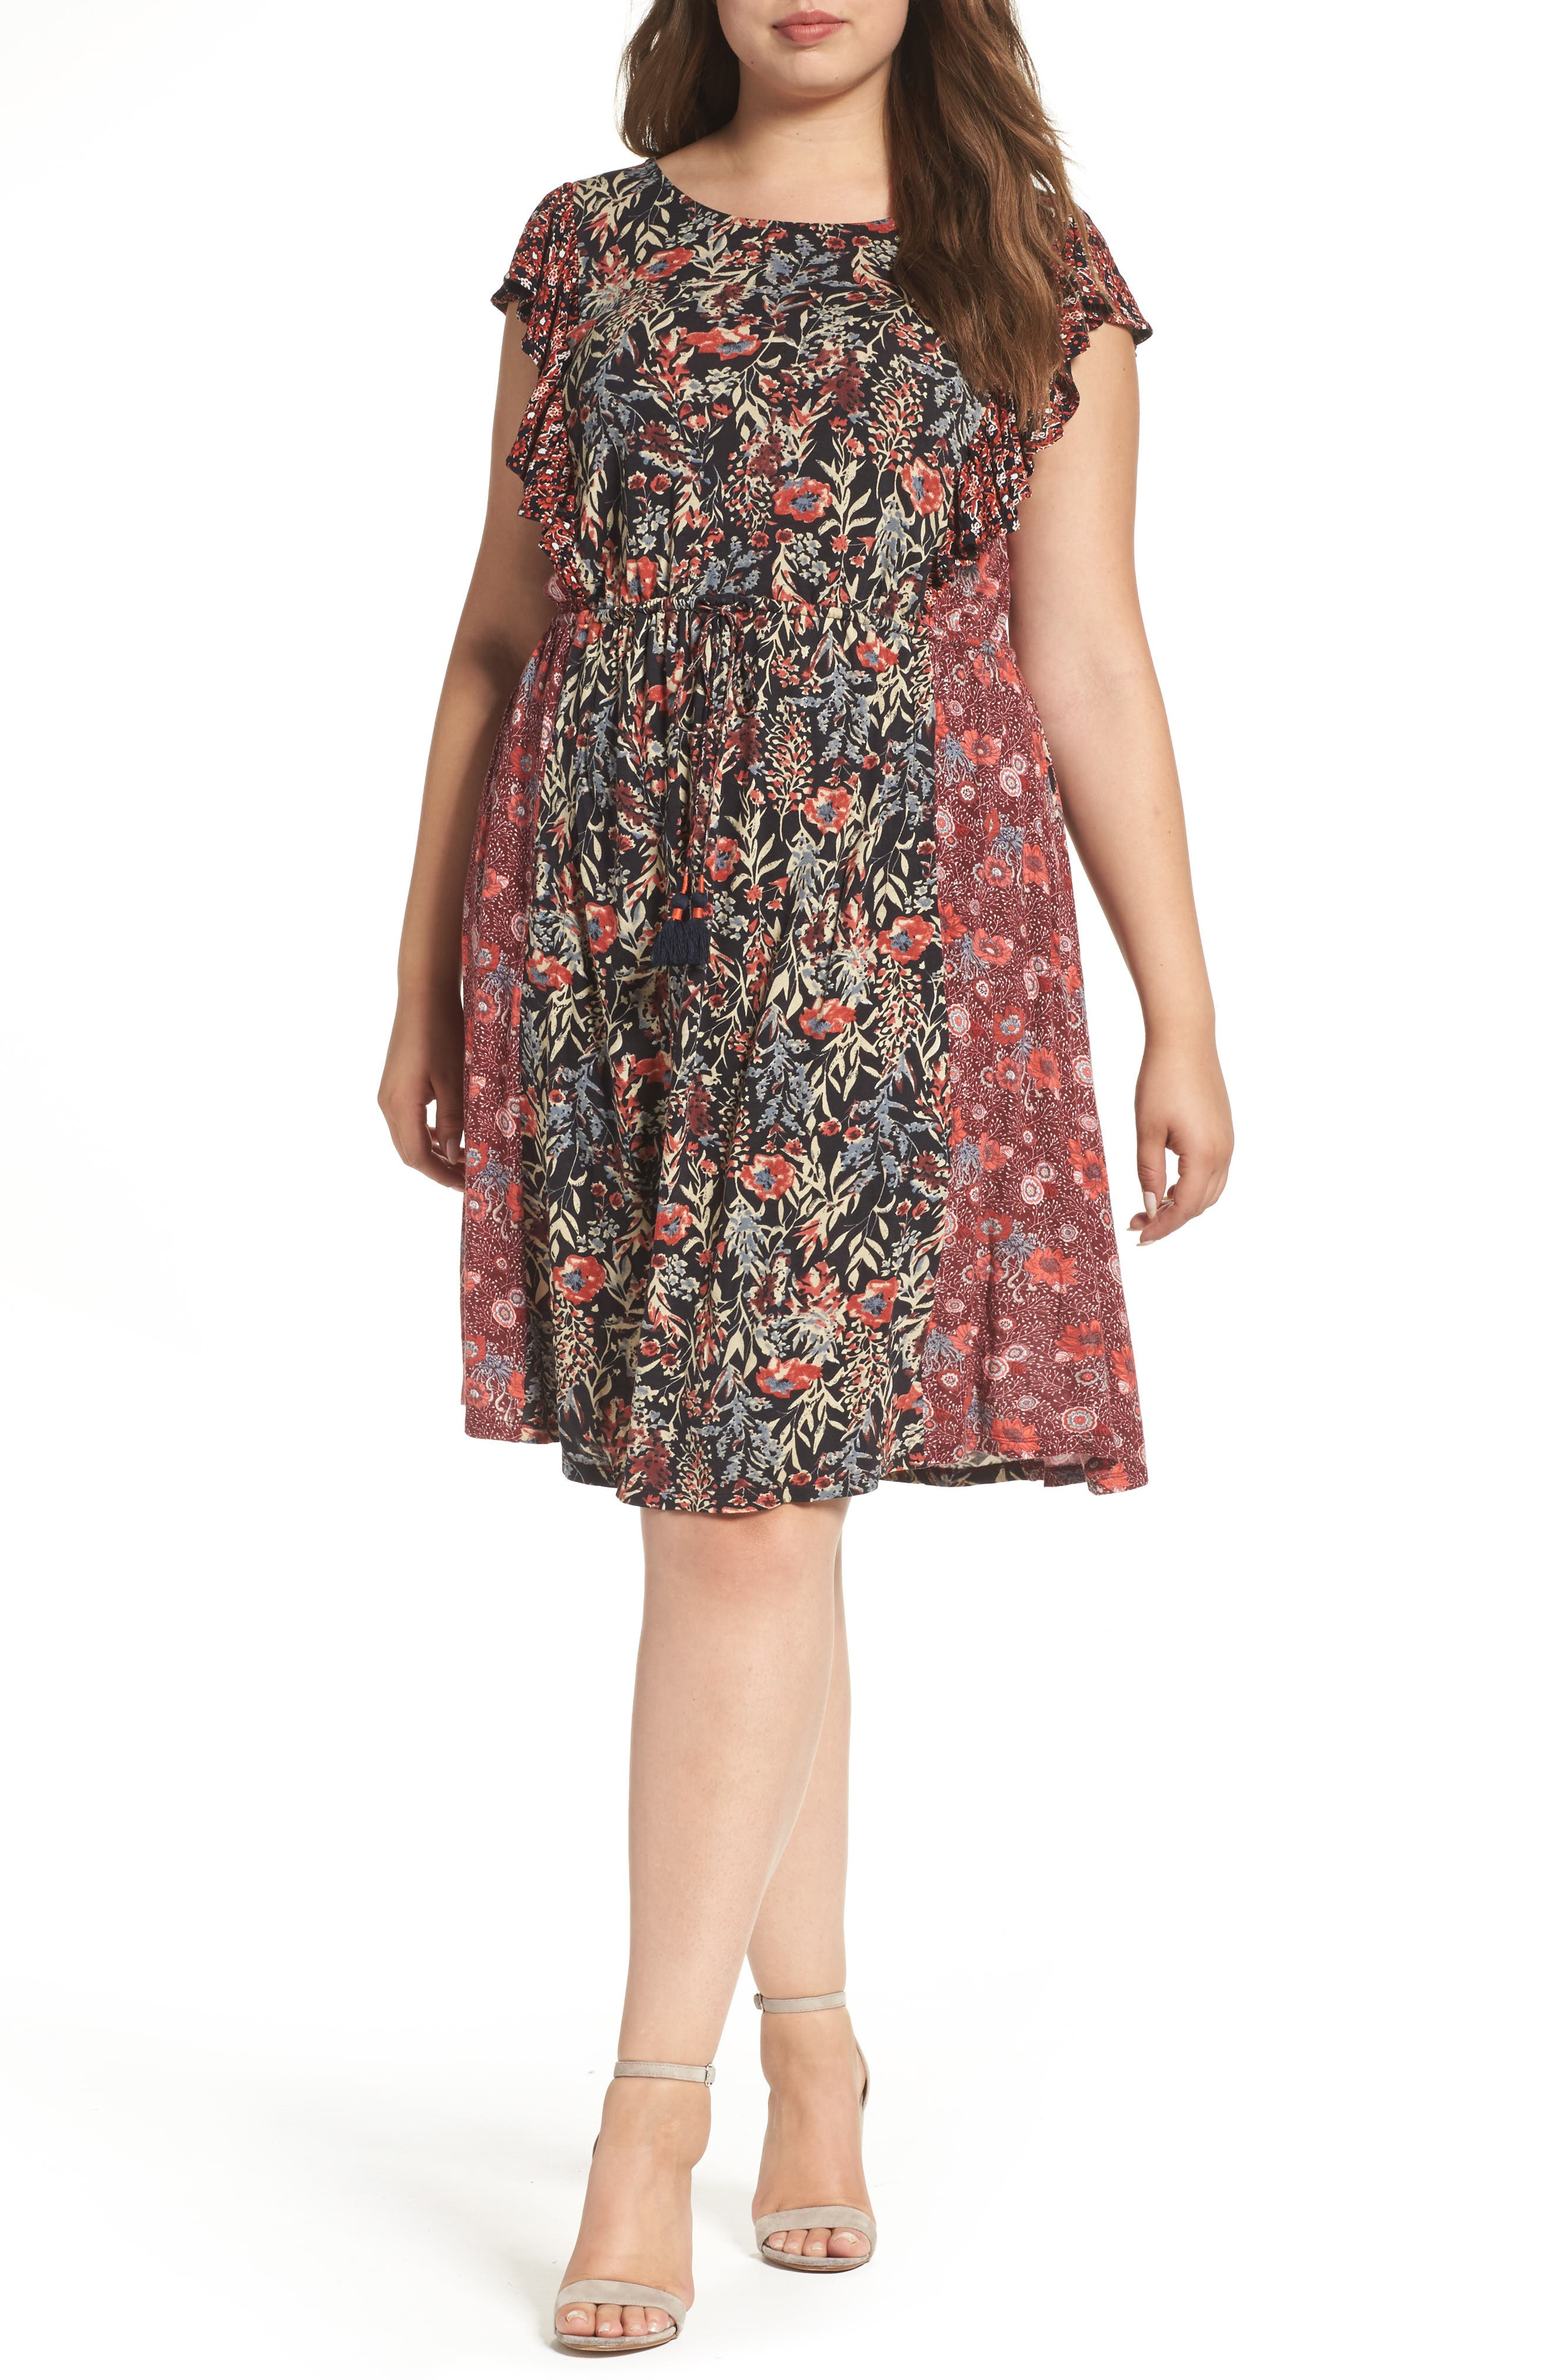 Lucky Brand Mixed Floral Print Dress (Plus Size)